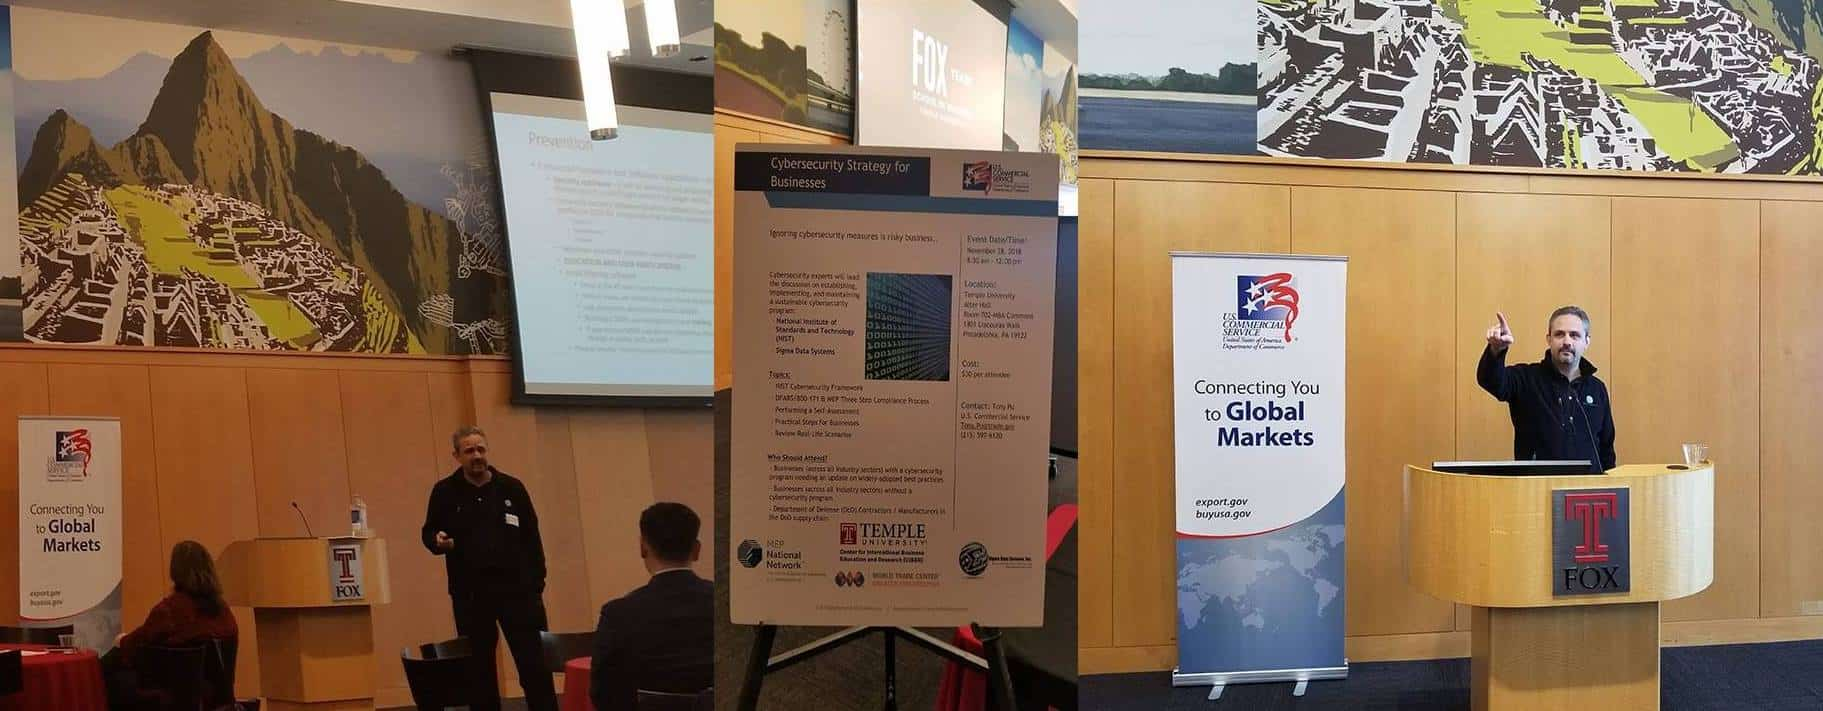 US Commercial Service NIST Cybersecurity Event Photo